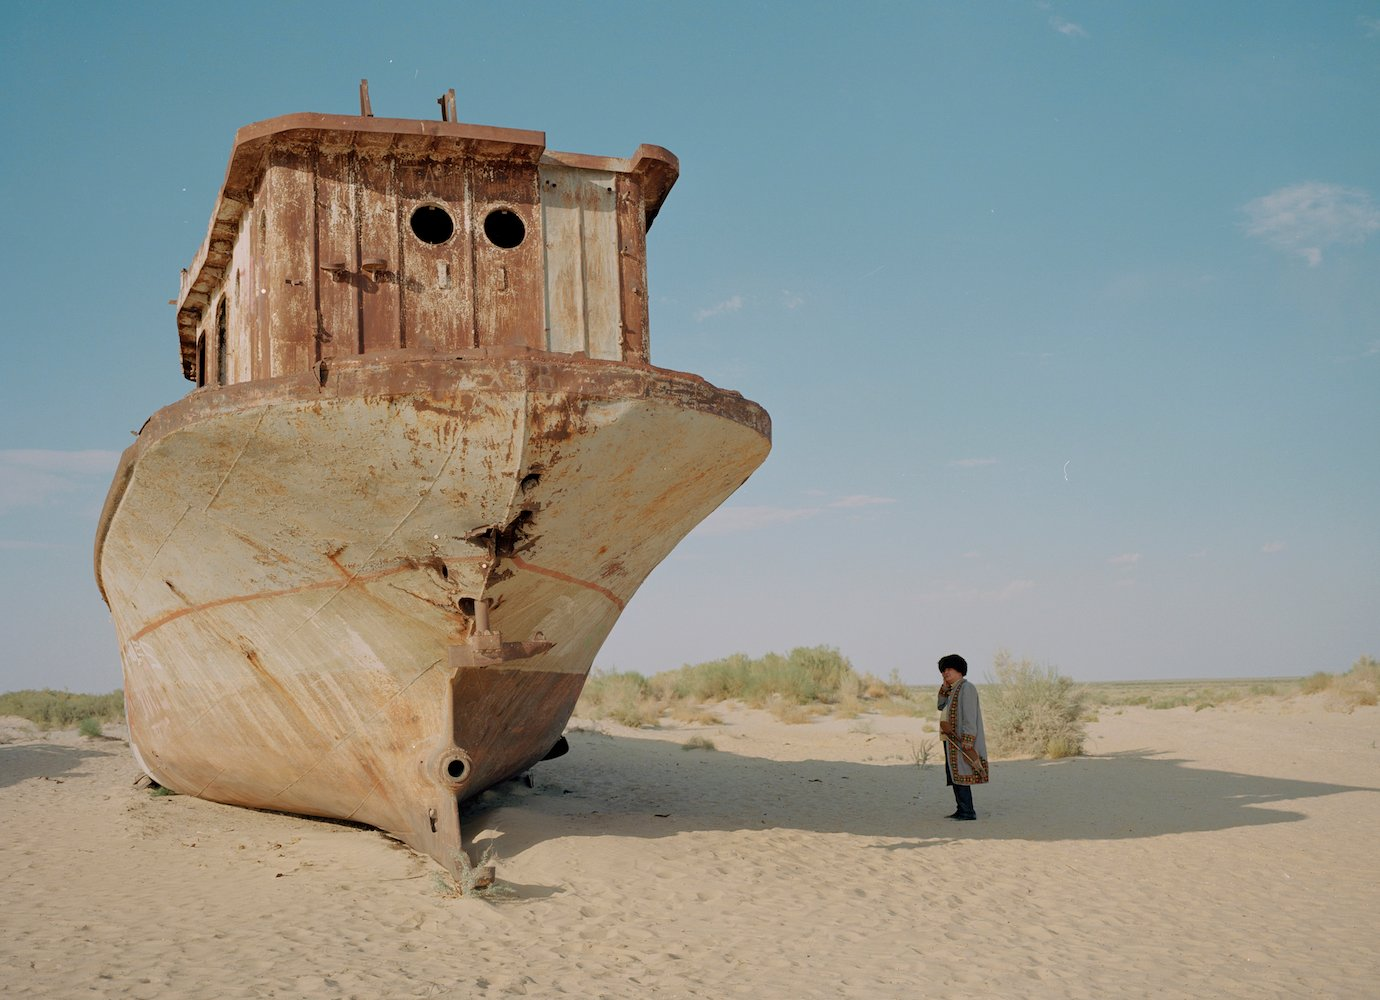 Waiting For The Sea is a documentary finding new perspectives amid the ruins of Uzbekistan's Aral Sea